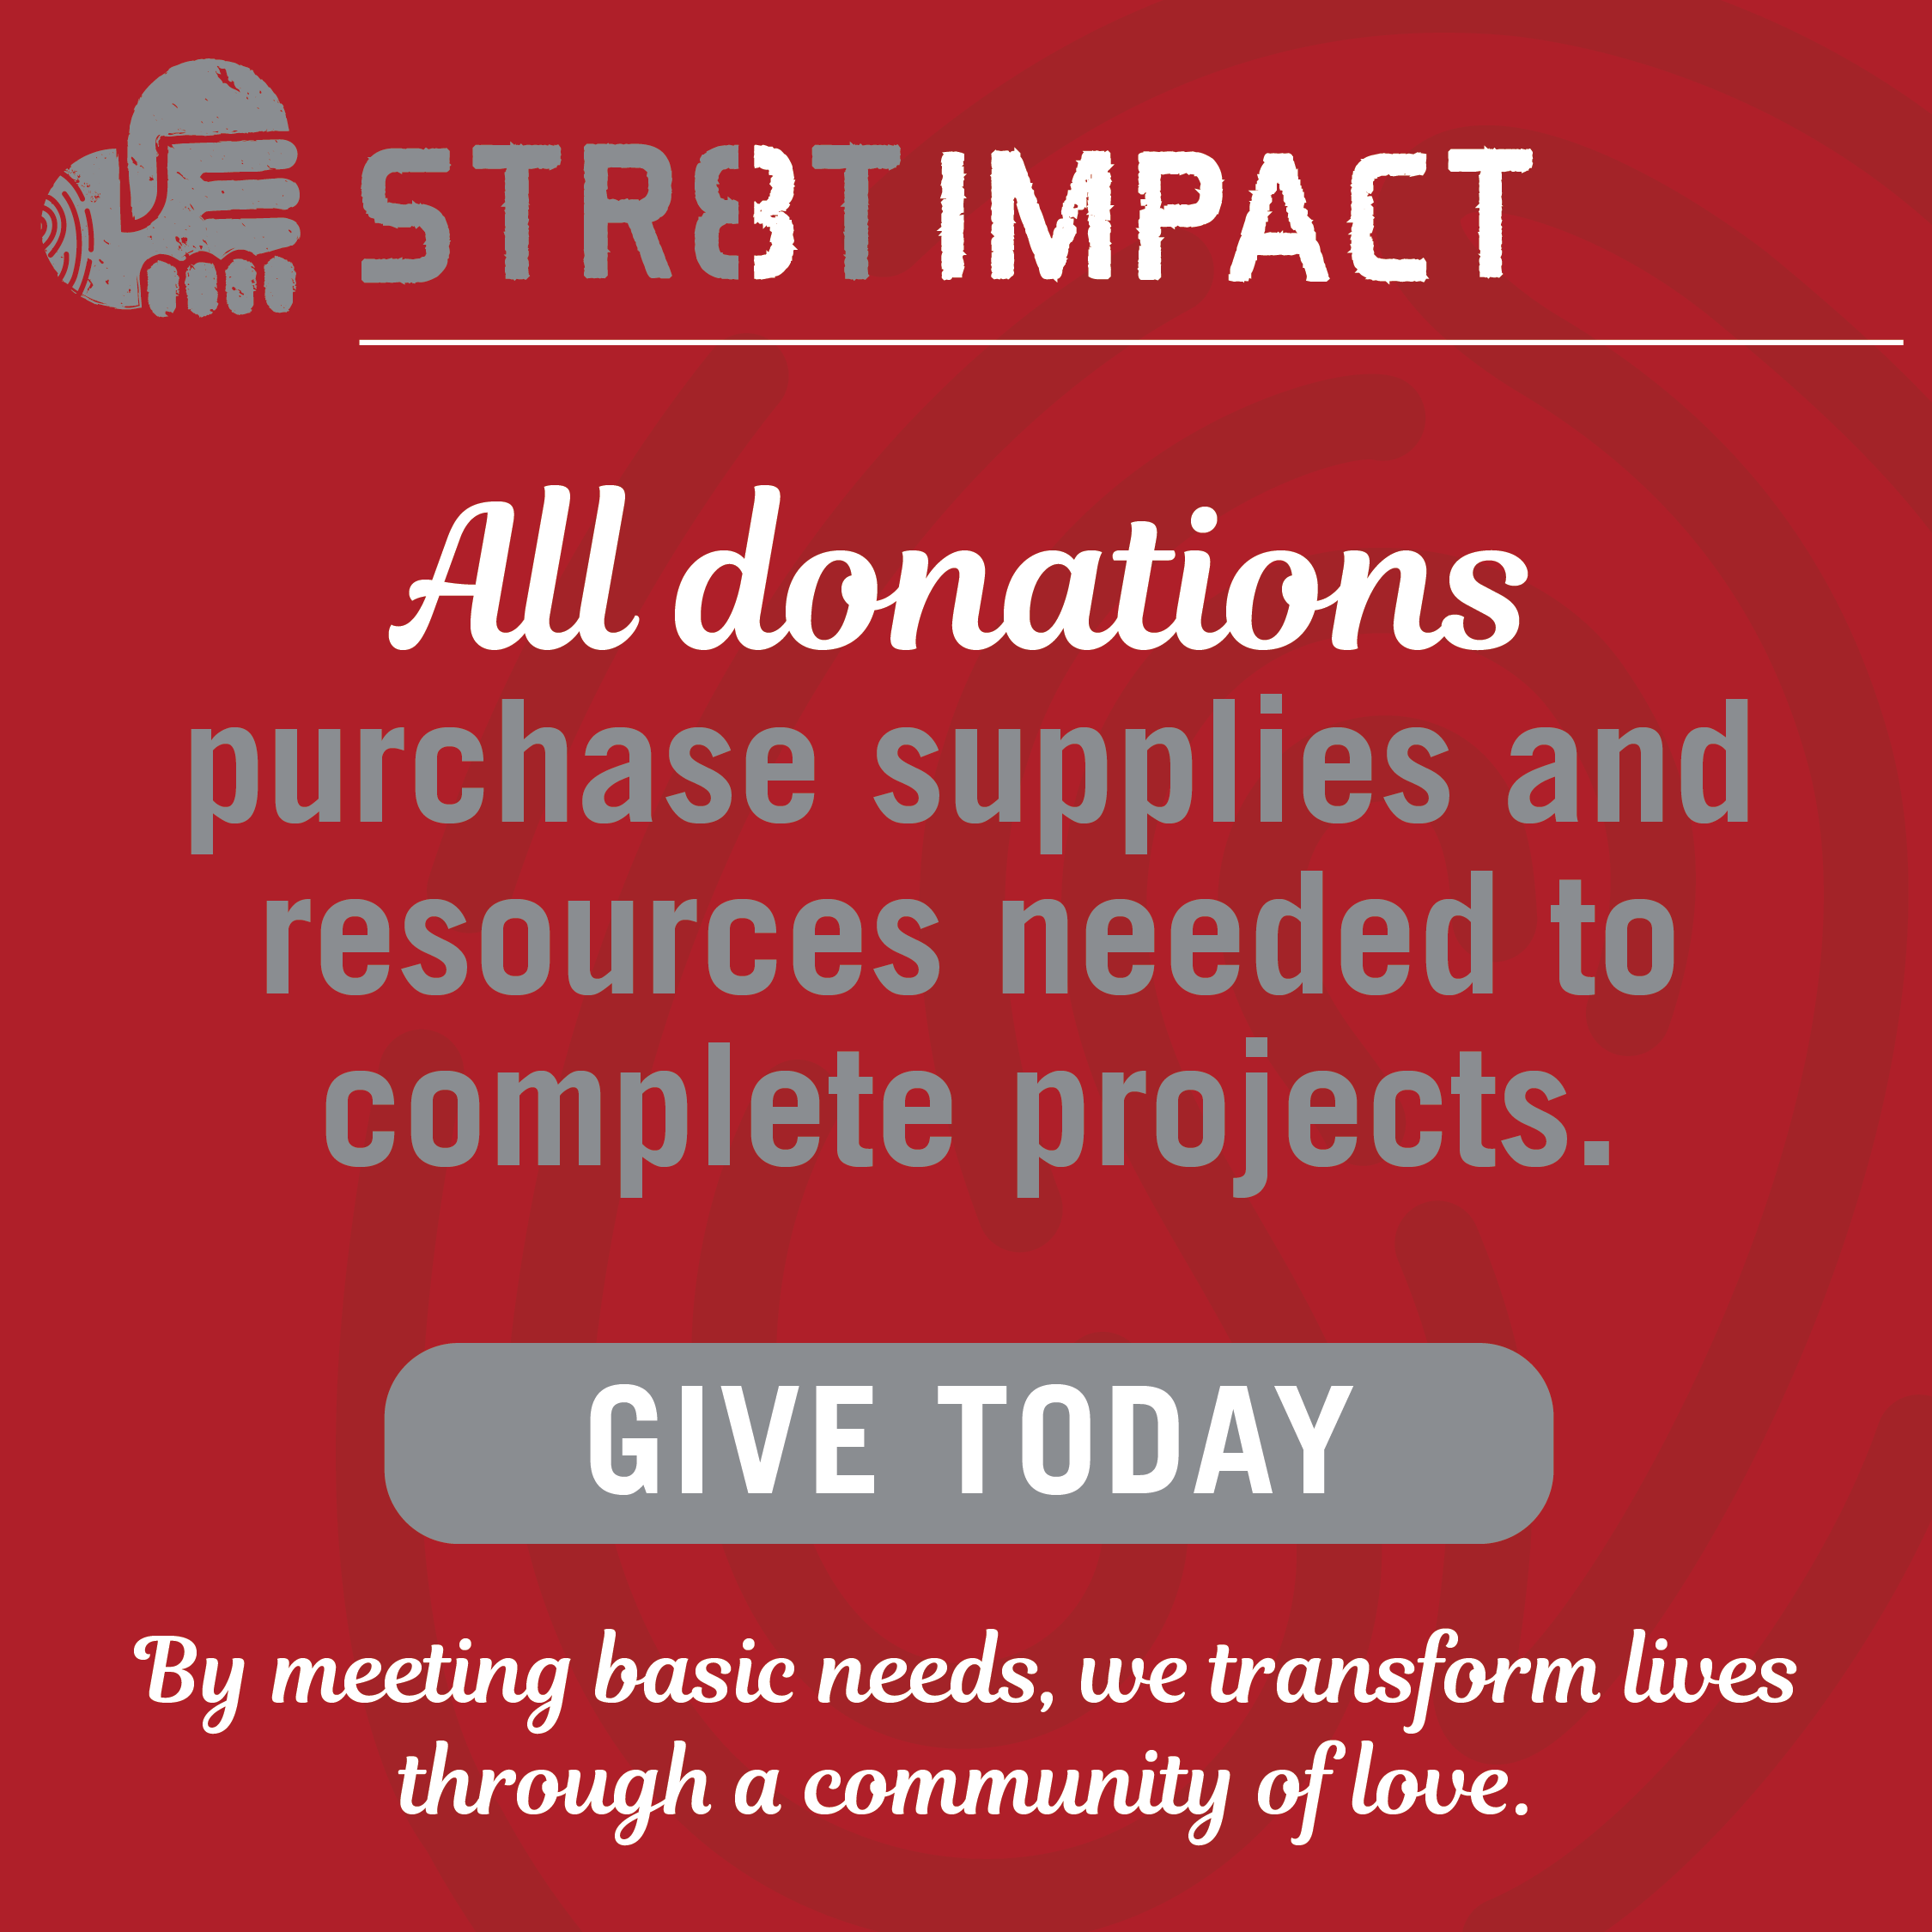 ss-str8t-impact-donation-levels-2018-12-11-04.png